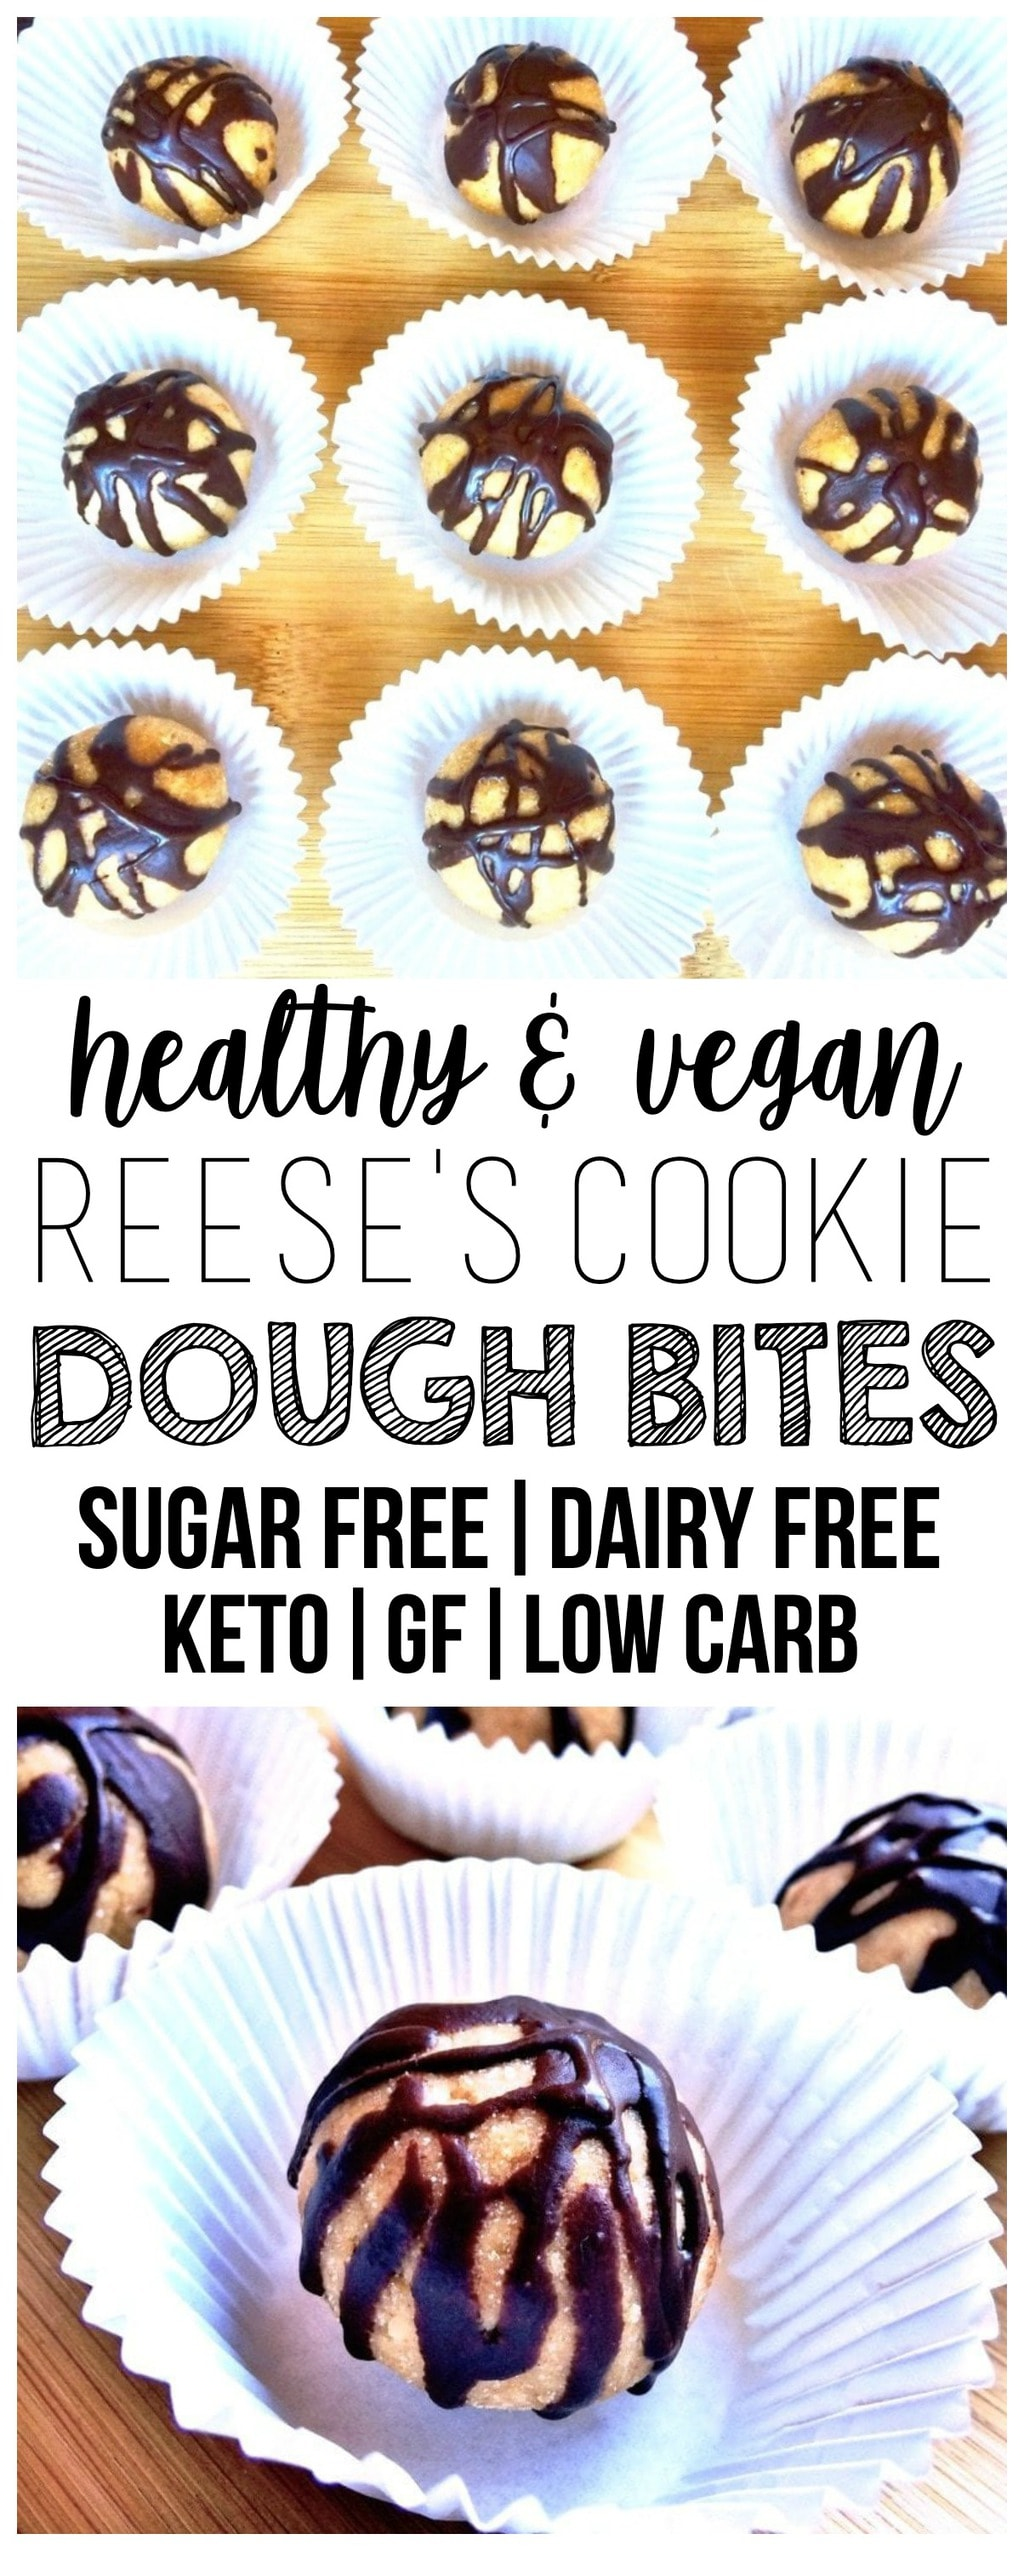 These Keto Reese's Peanut Butter Cookie Dough Bites are the ultimate treat that taste sinfully delicious but are actually super healthy for you! Packed with healthy fats, fiber, and protein, but also low-calorie, low-carb, grain-free, dairy-free, gluten-free & sugar-free.